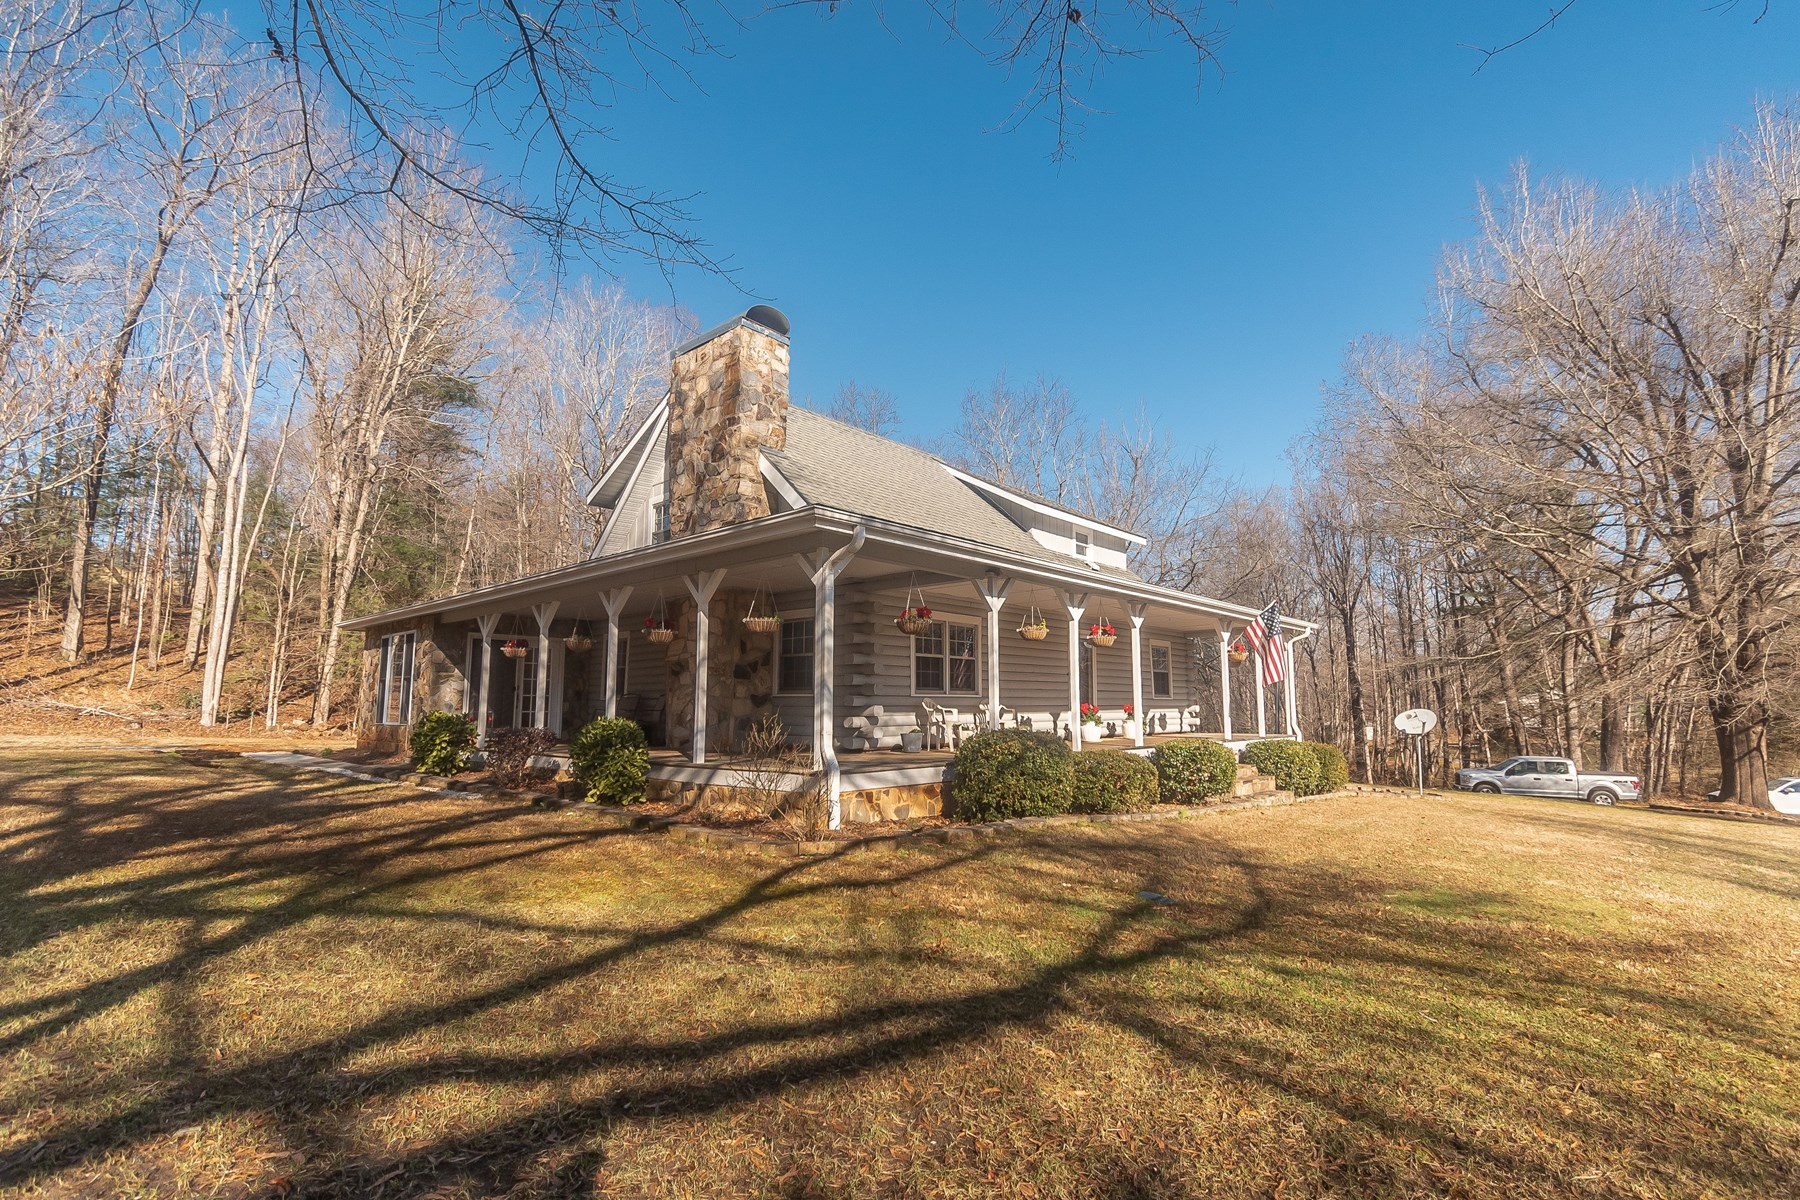 Country Home for sale in Mount Airy NC